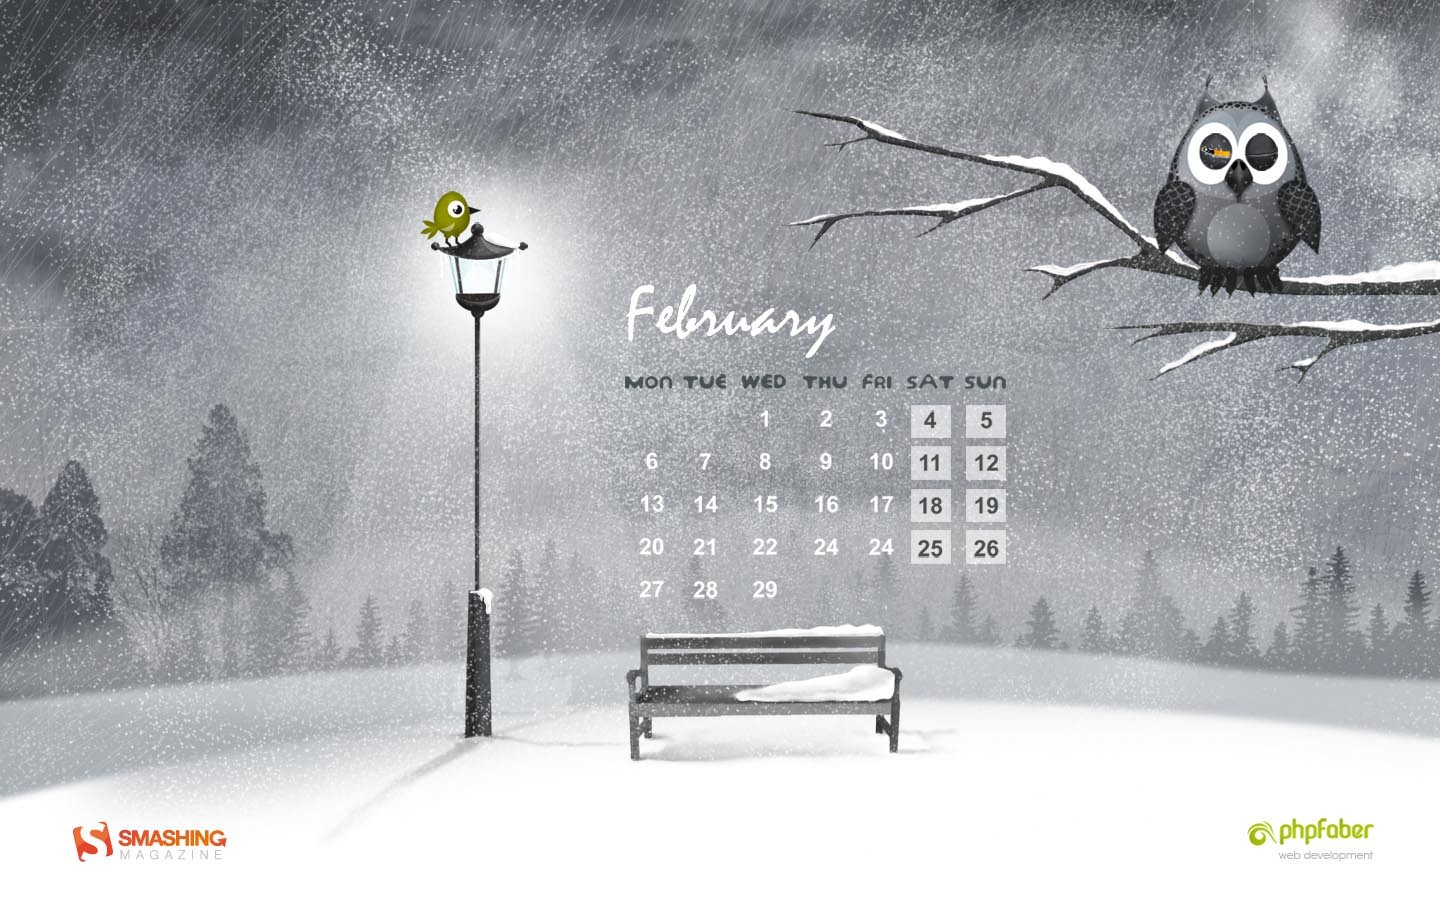 In January Calendar Wallpaper 31374